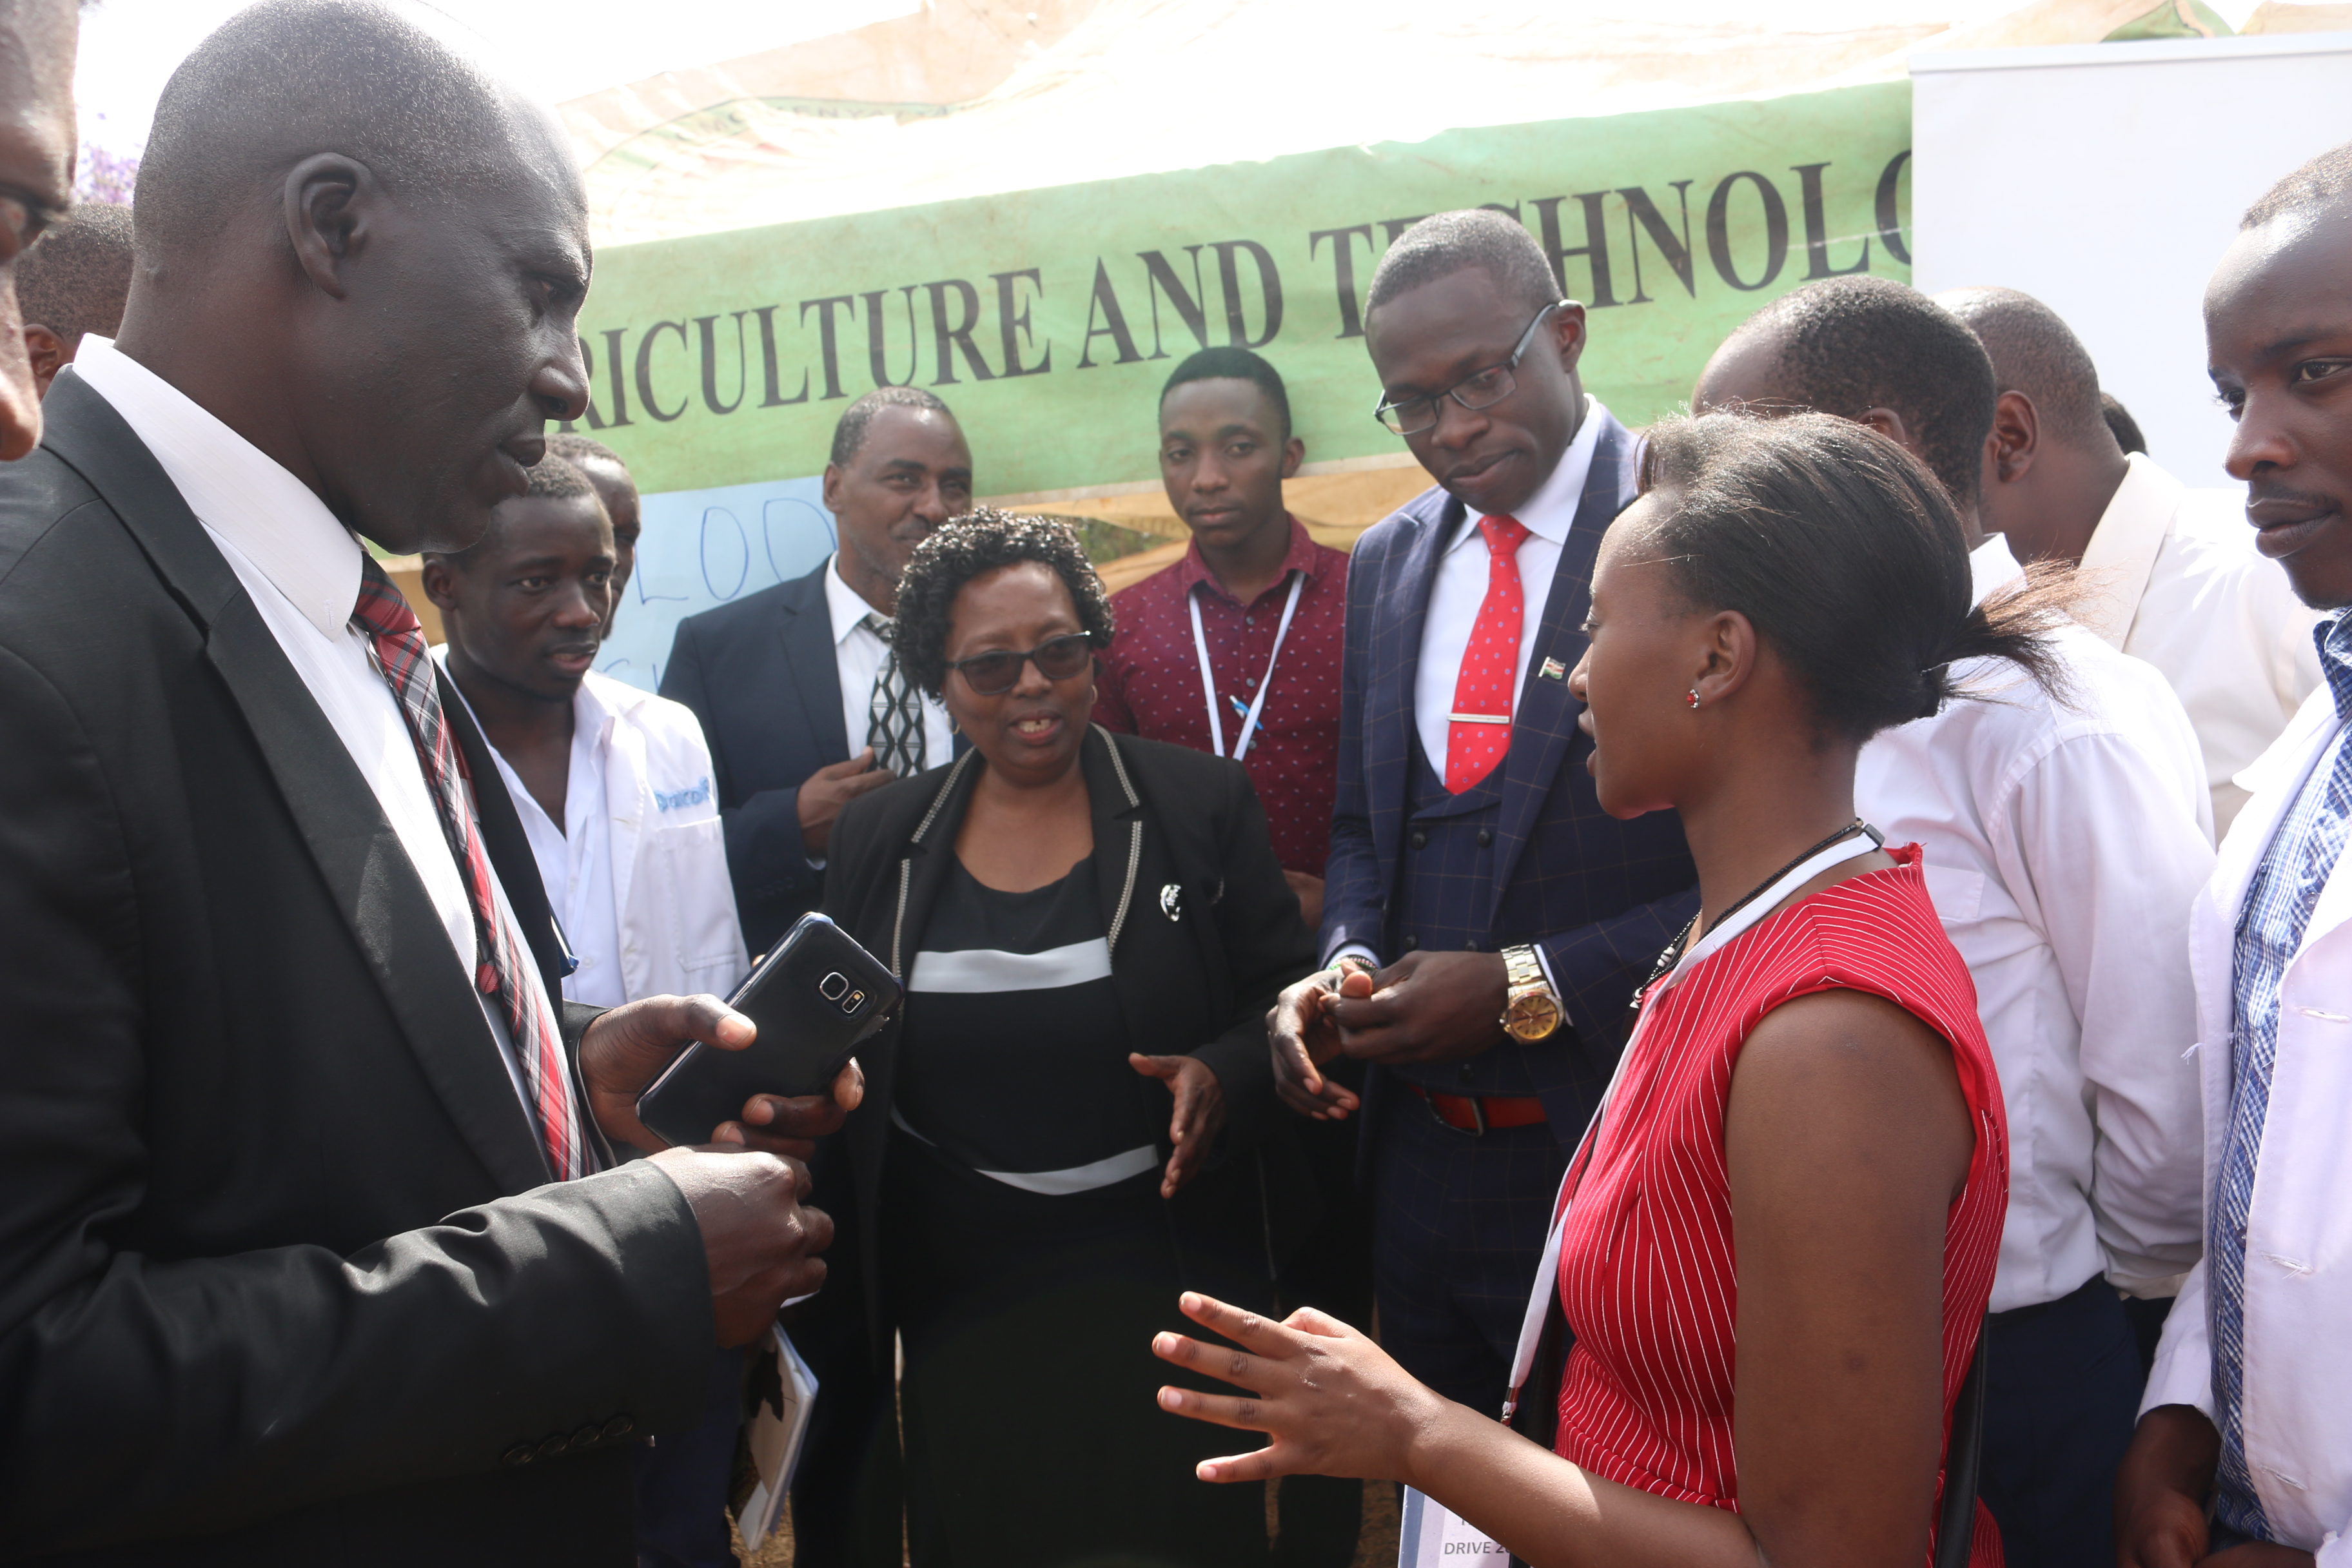 Ms. Claire Wahome explains a point to the VC Prof. Ngumi, and the DVC Finance Prof. Moirongo.